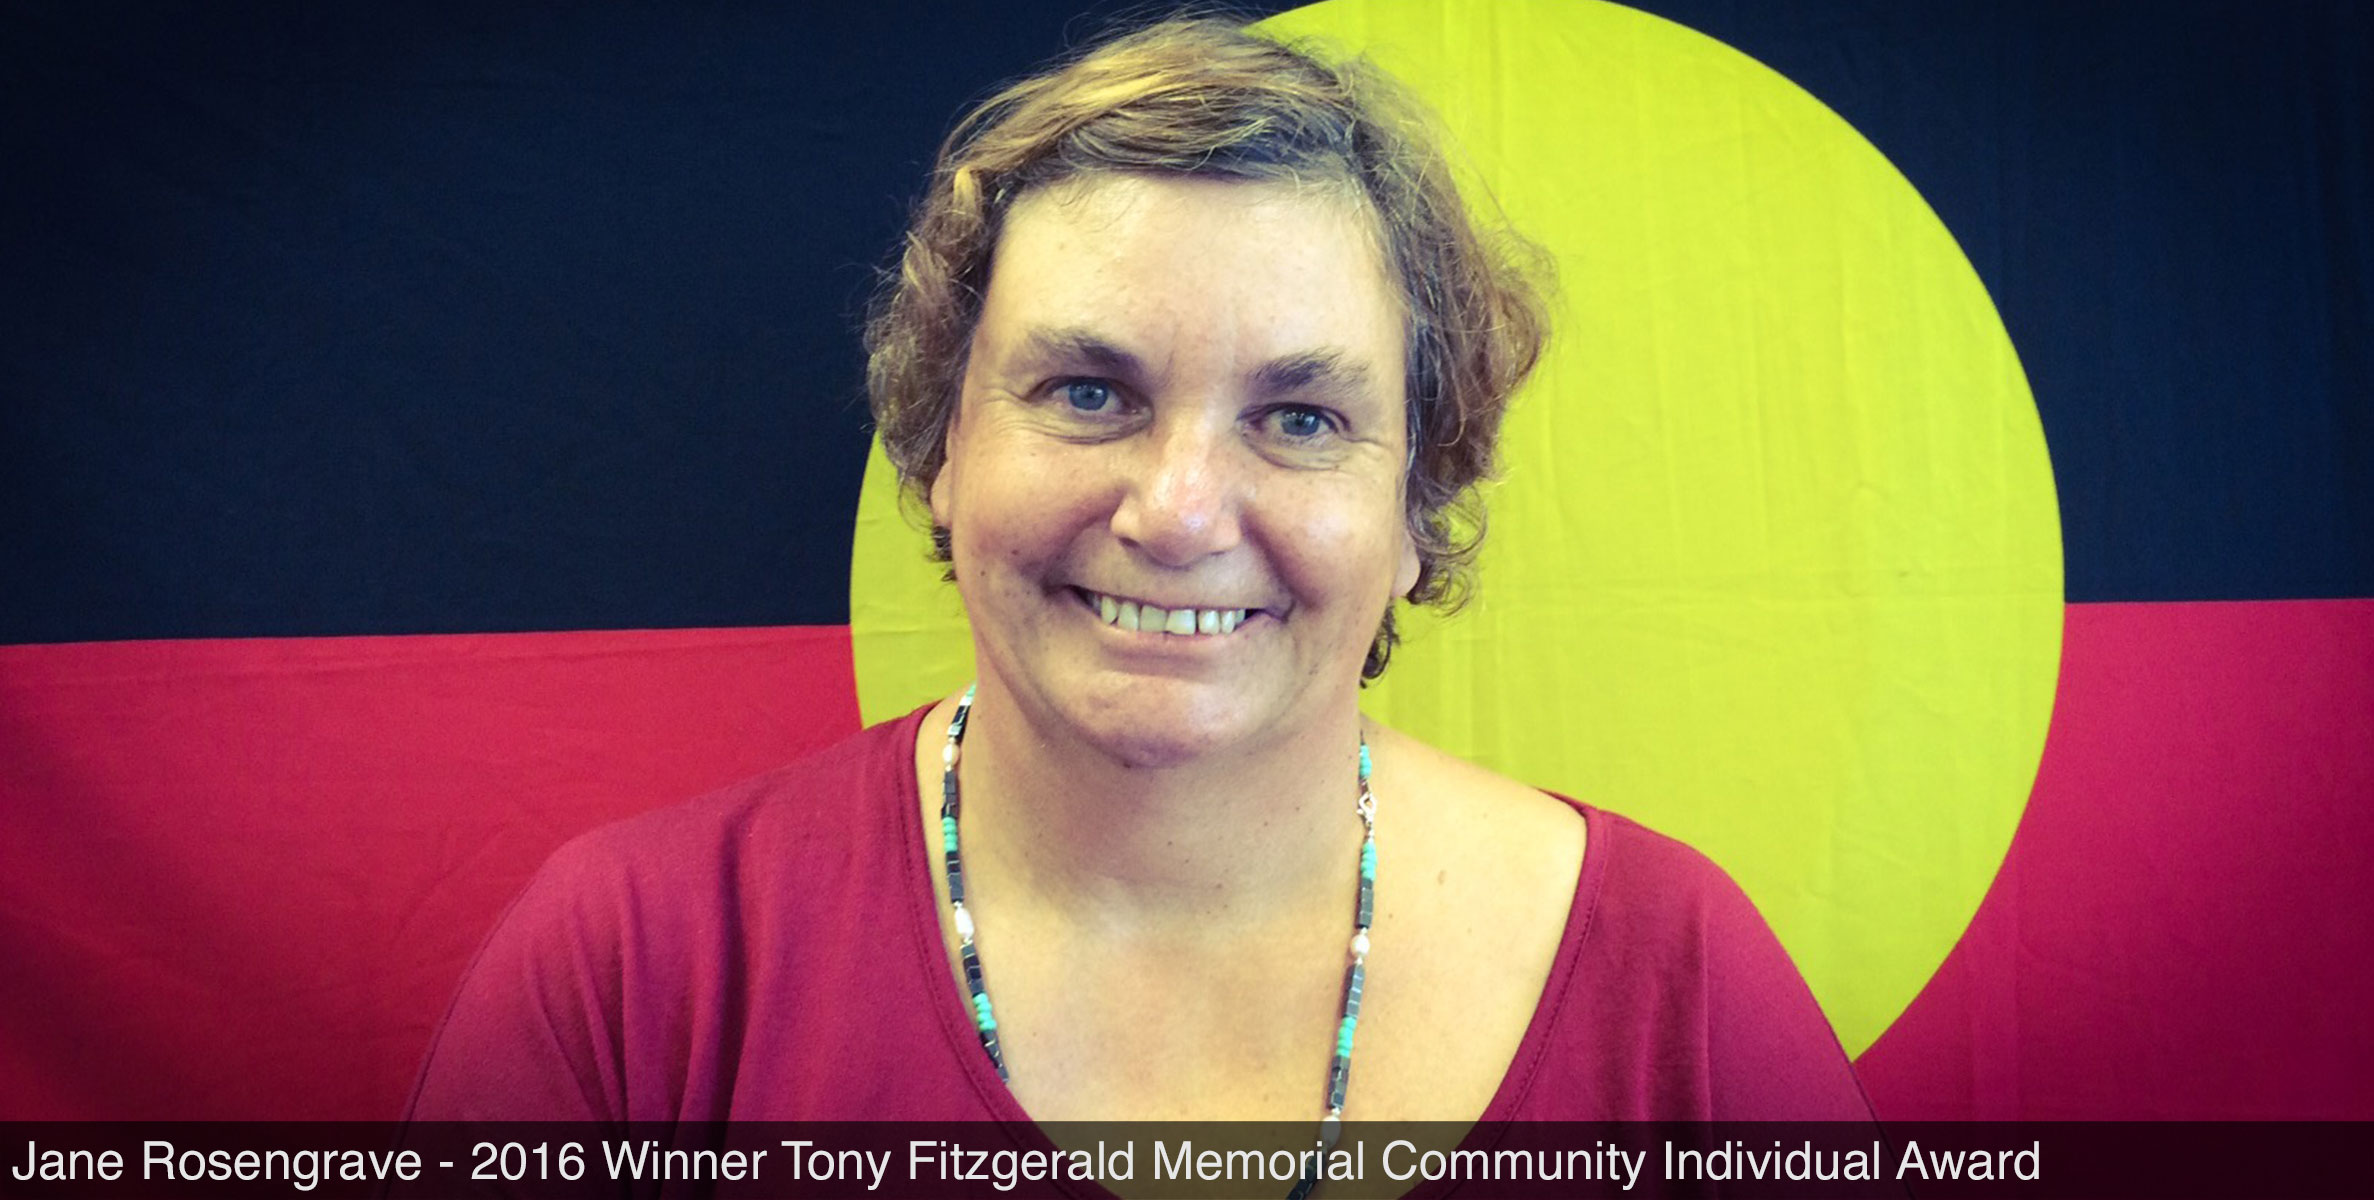 Jane Rosengrave - 2016 Winner Tony Fitzgerald Memorial Community Individual Award